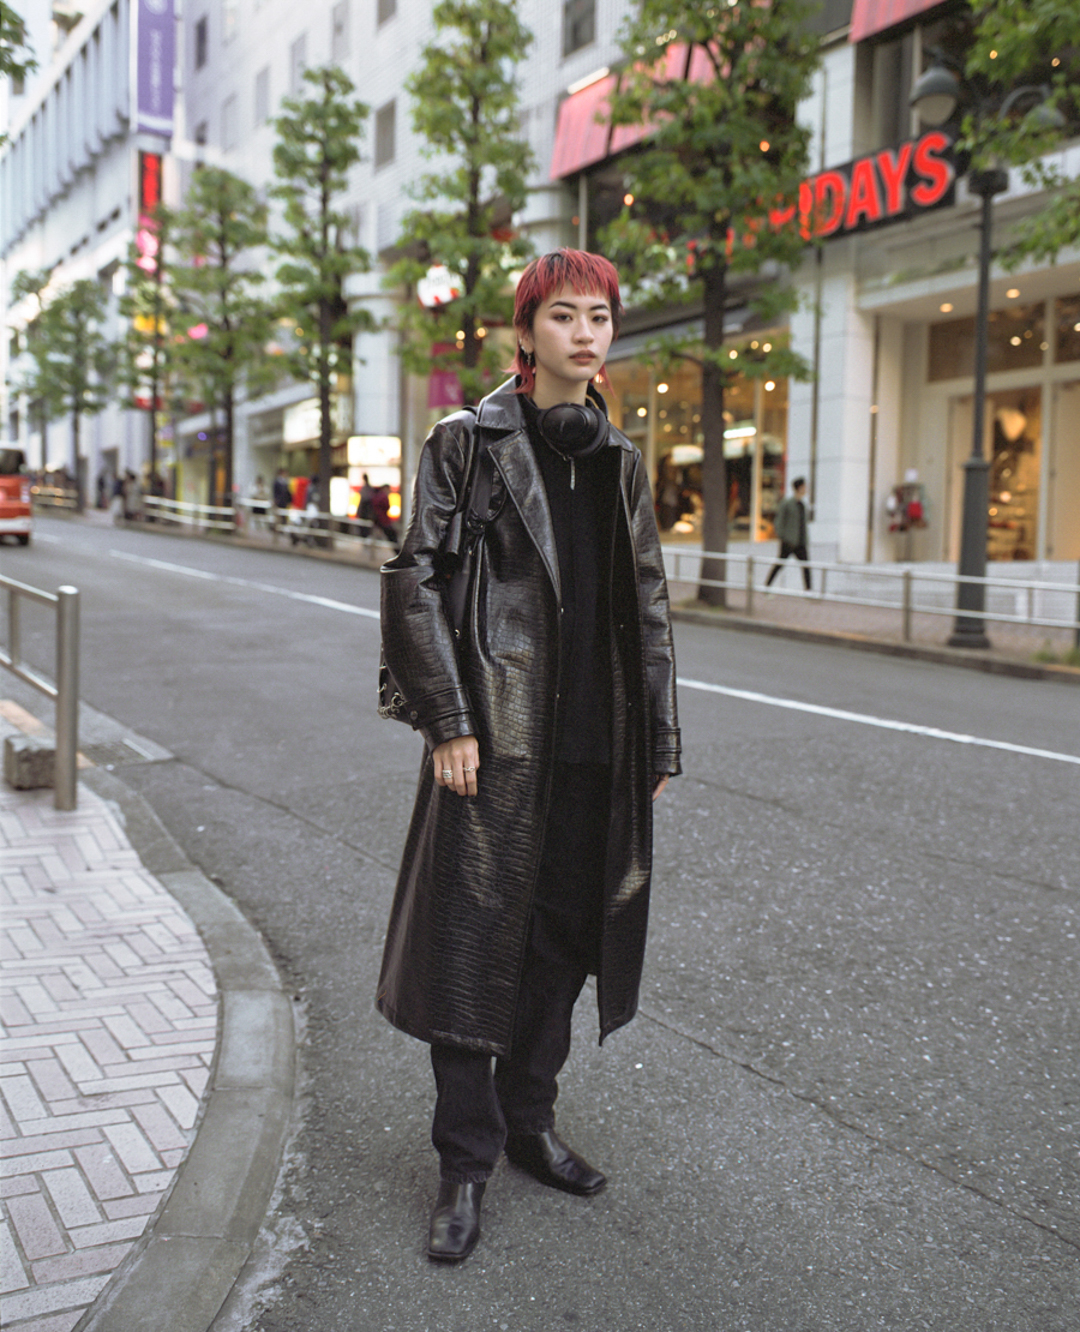 Nanami wearing a vintage leather jacket in  Shibuya